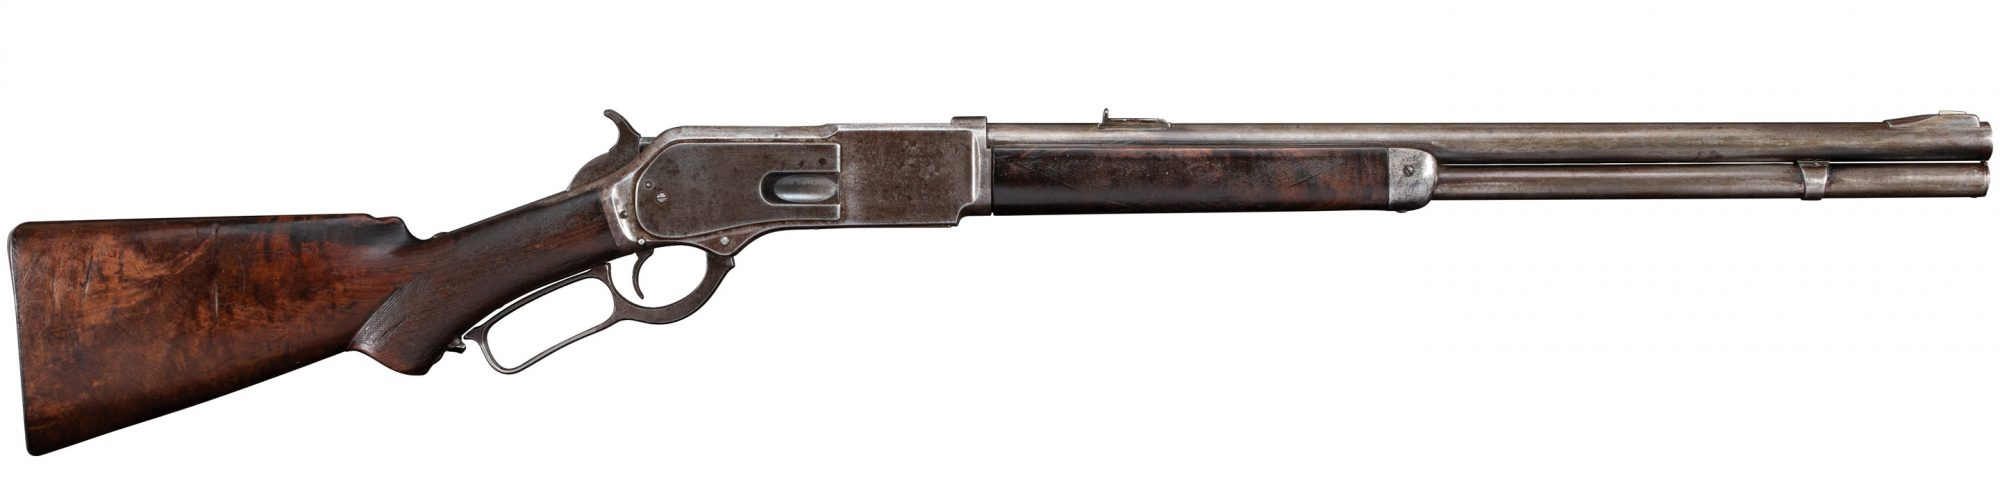 Photo of a Winchester Model 1876 from 1882, before restoration by Turnbull Restoration of Bloomfield NY